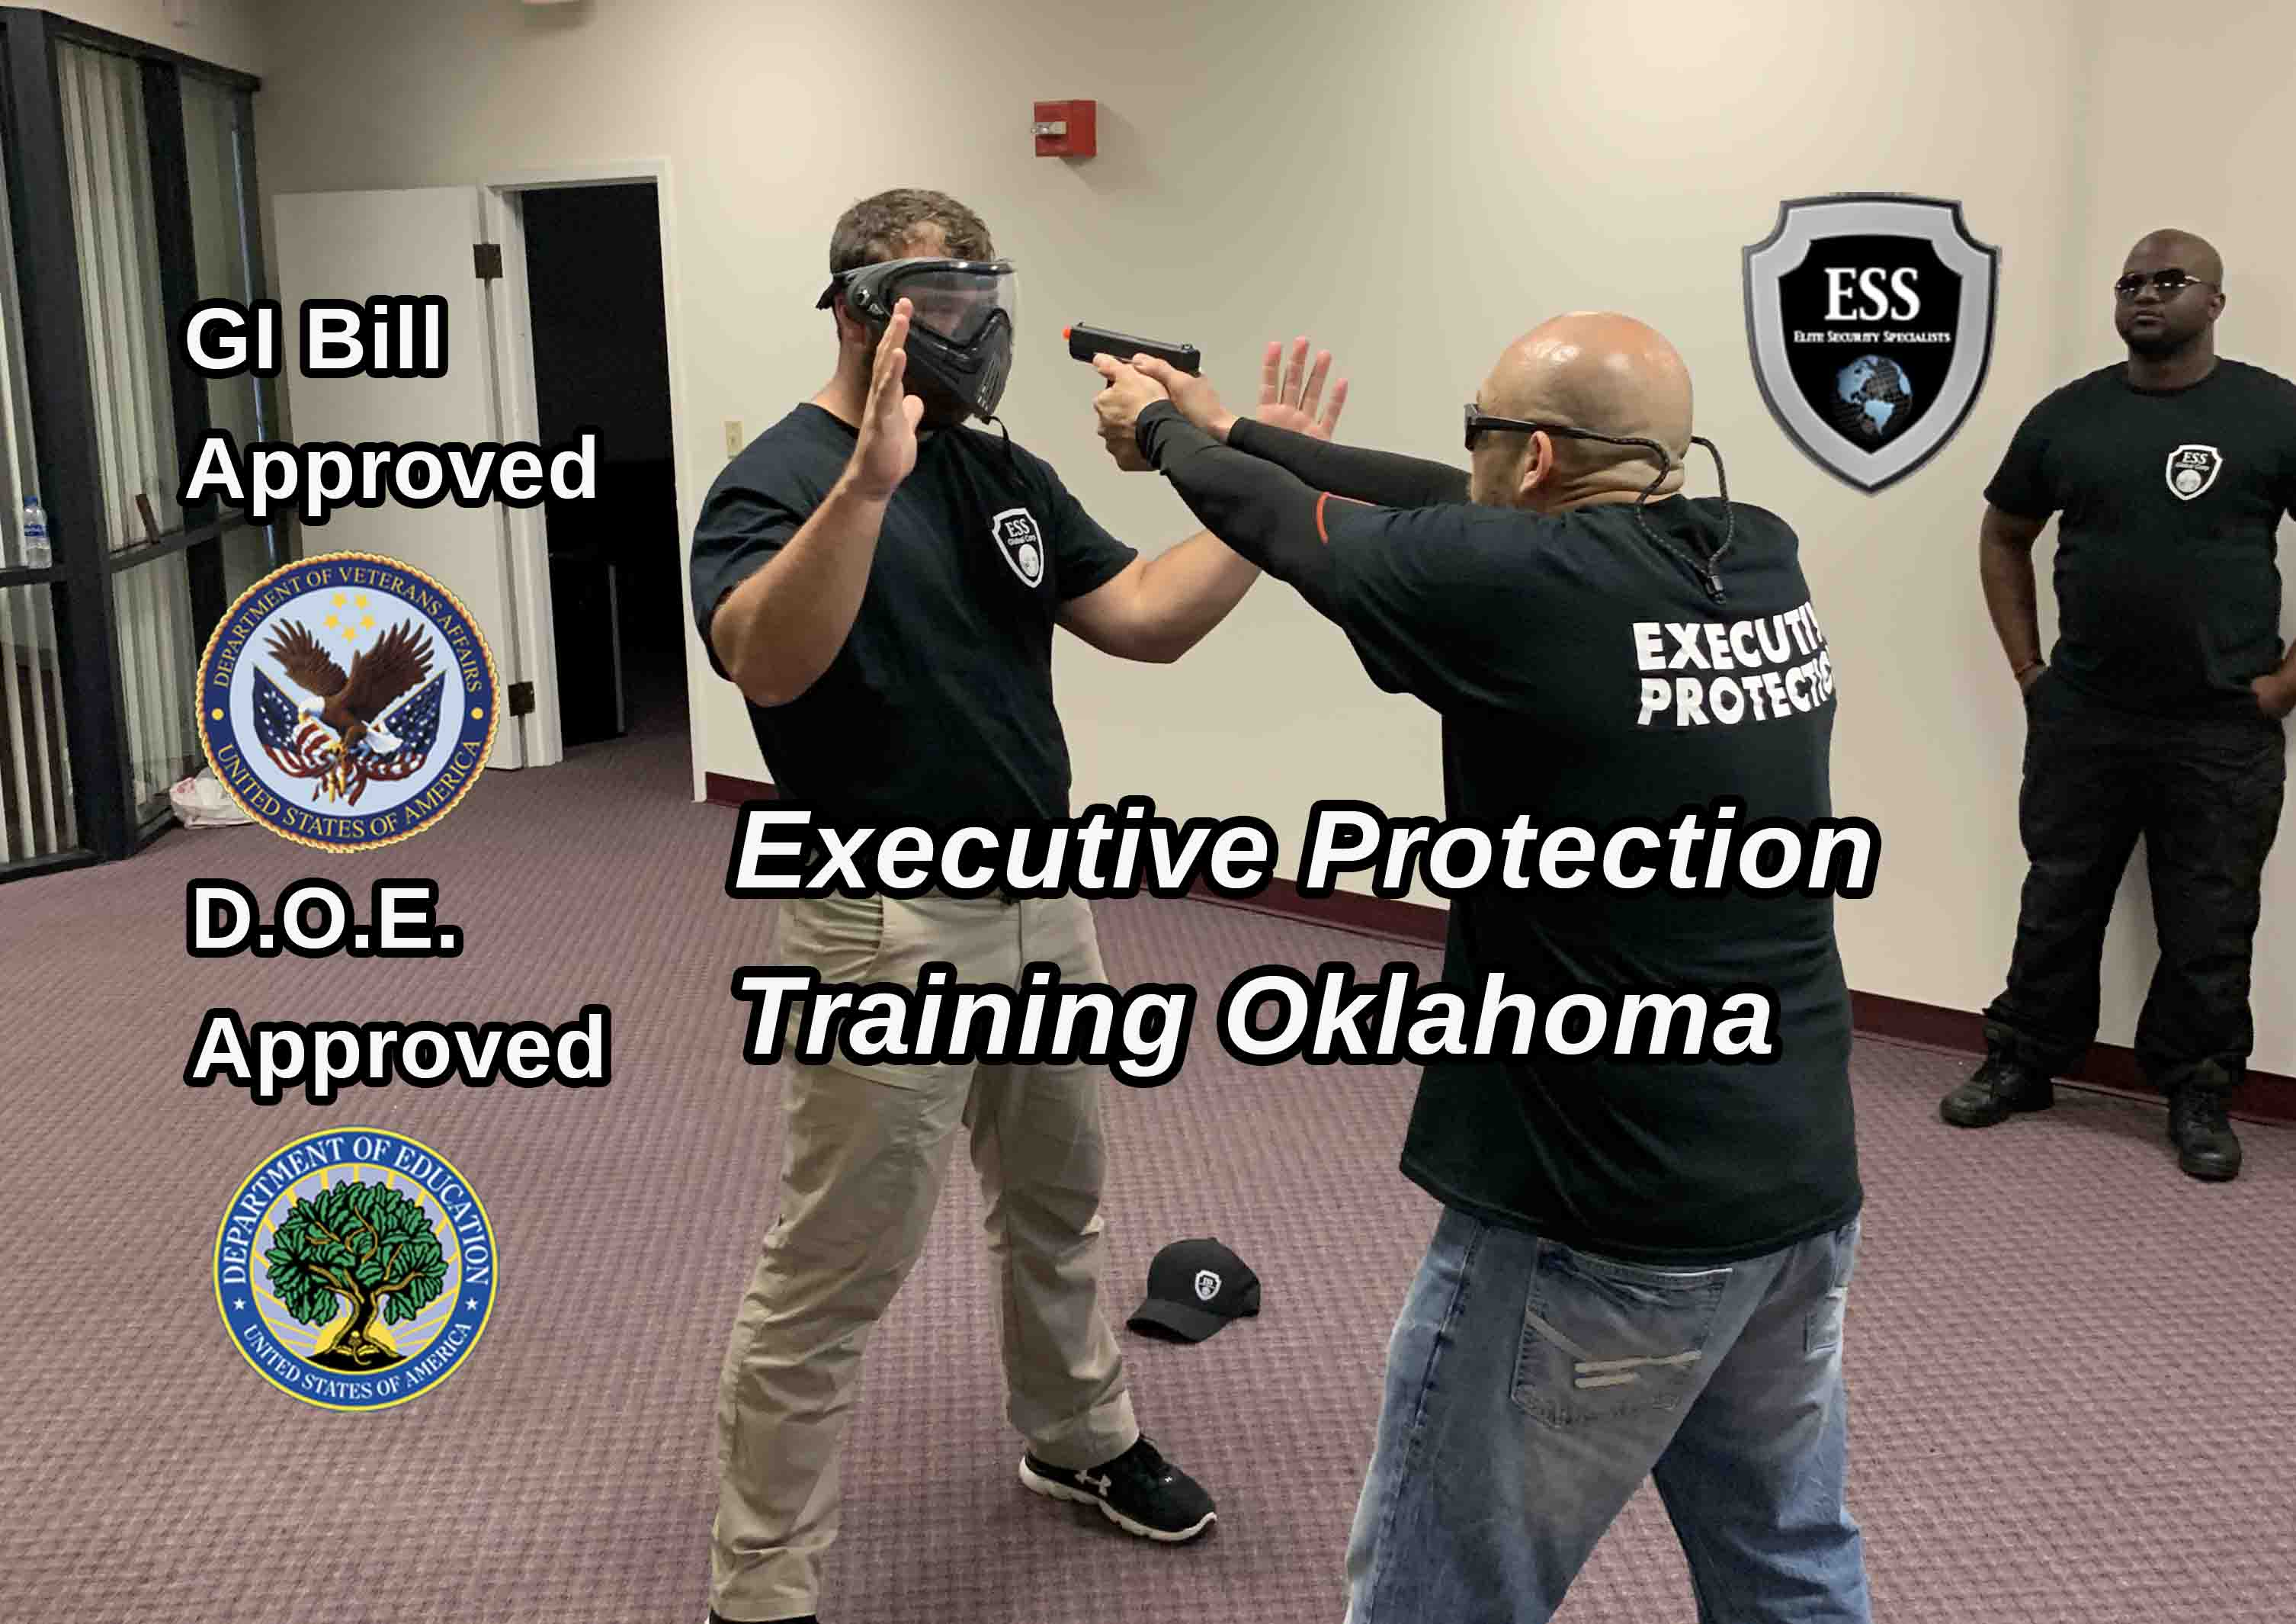 GI Bill Executive Protection Training - Oklahoma